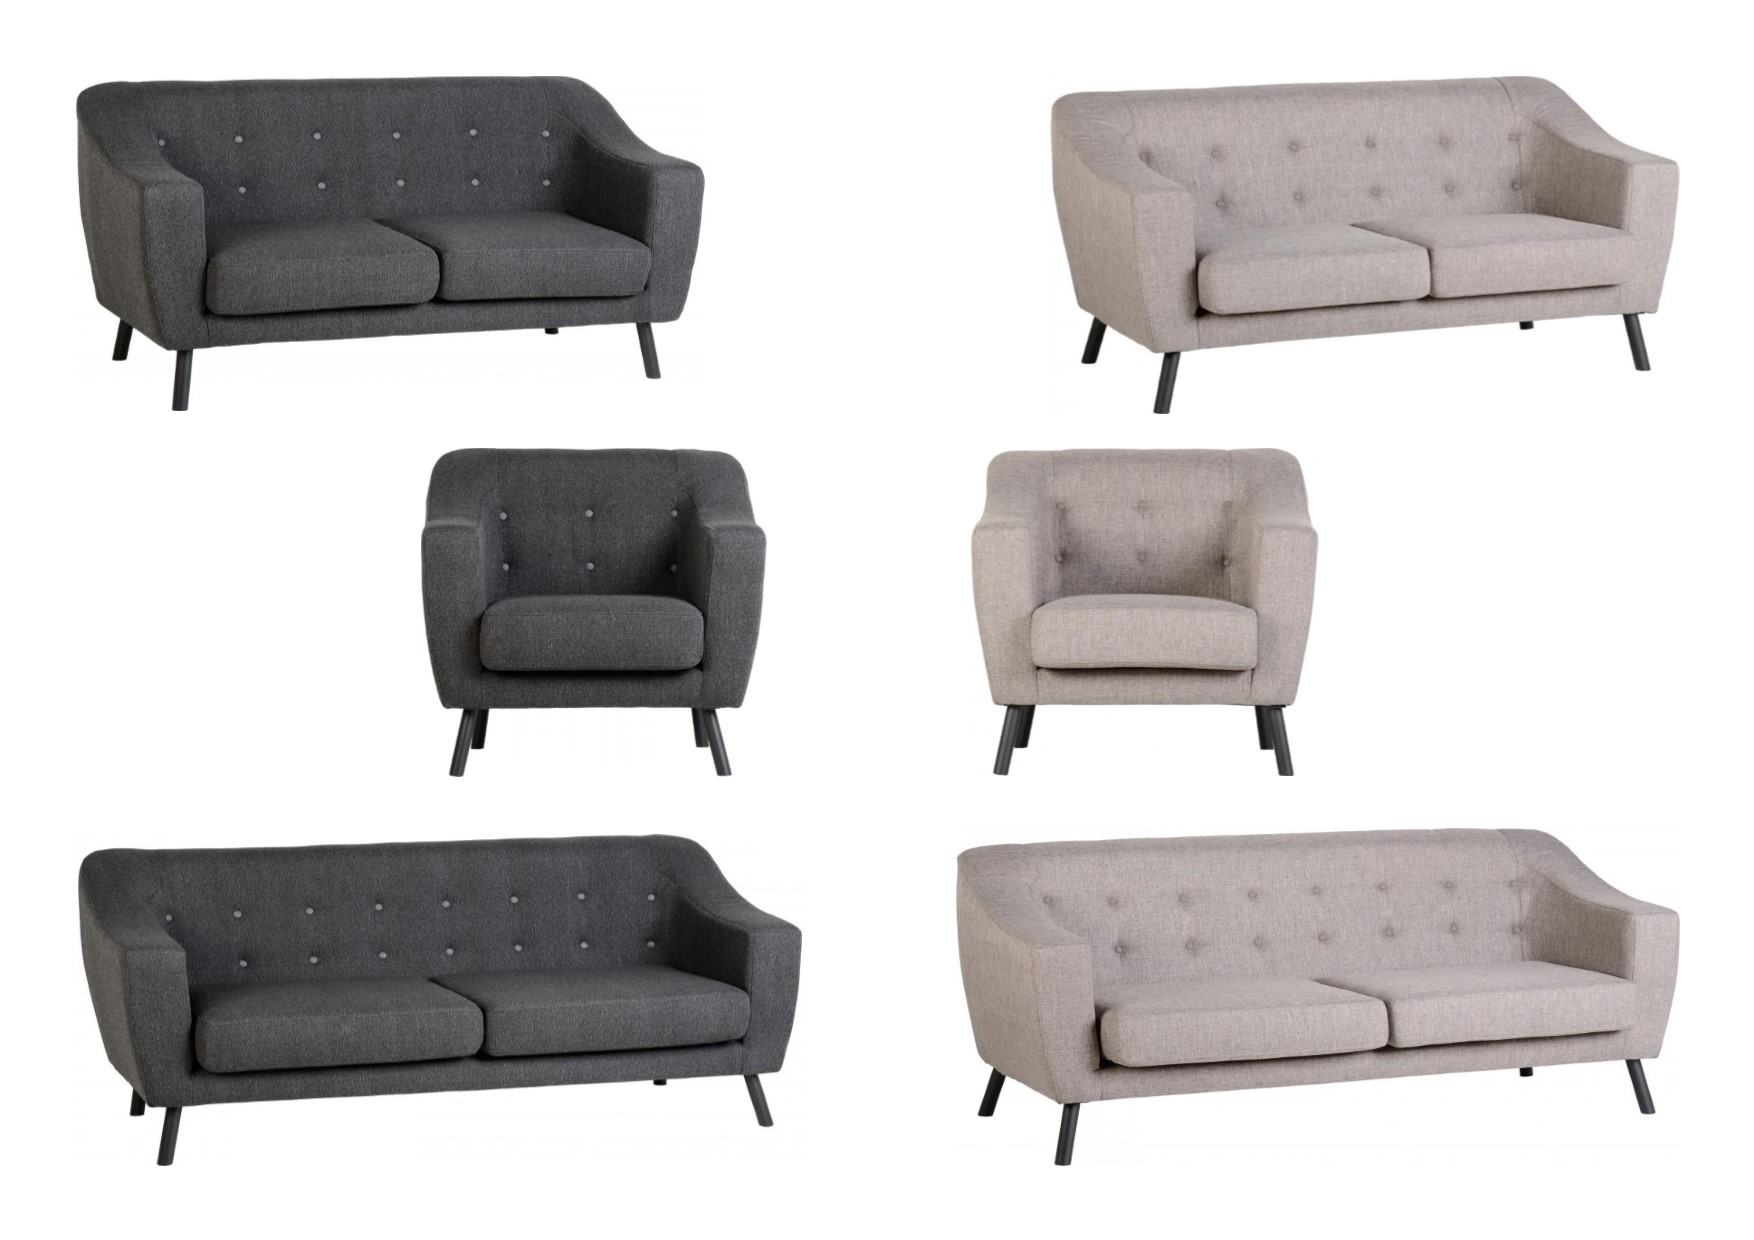 Seconique Ashley Sofa Collection Chair 2 & 3 Seater Sofa Beige